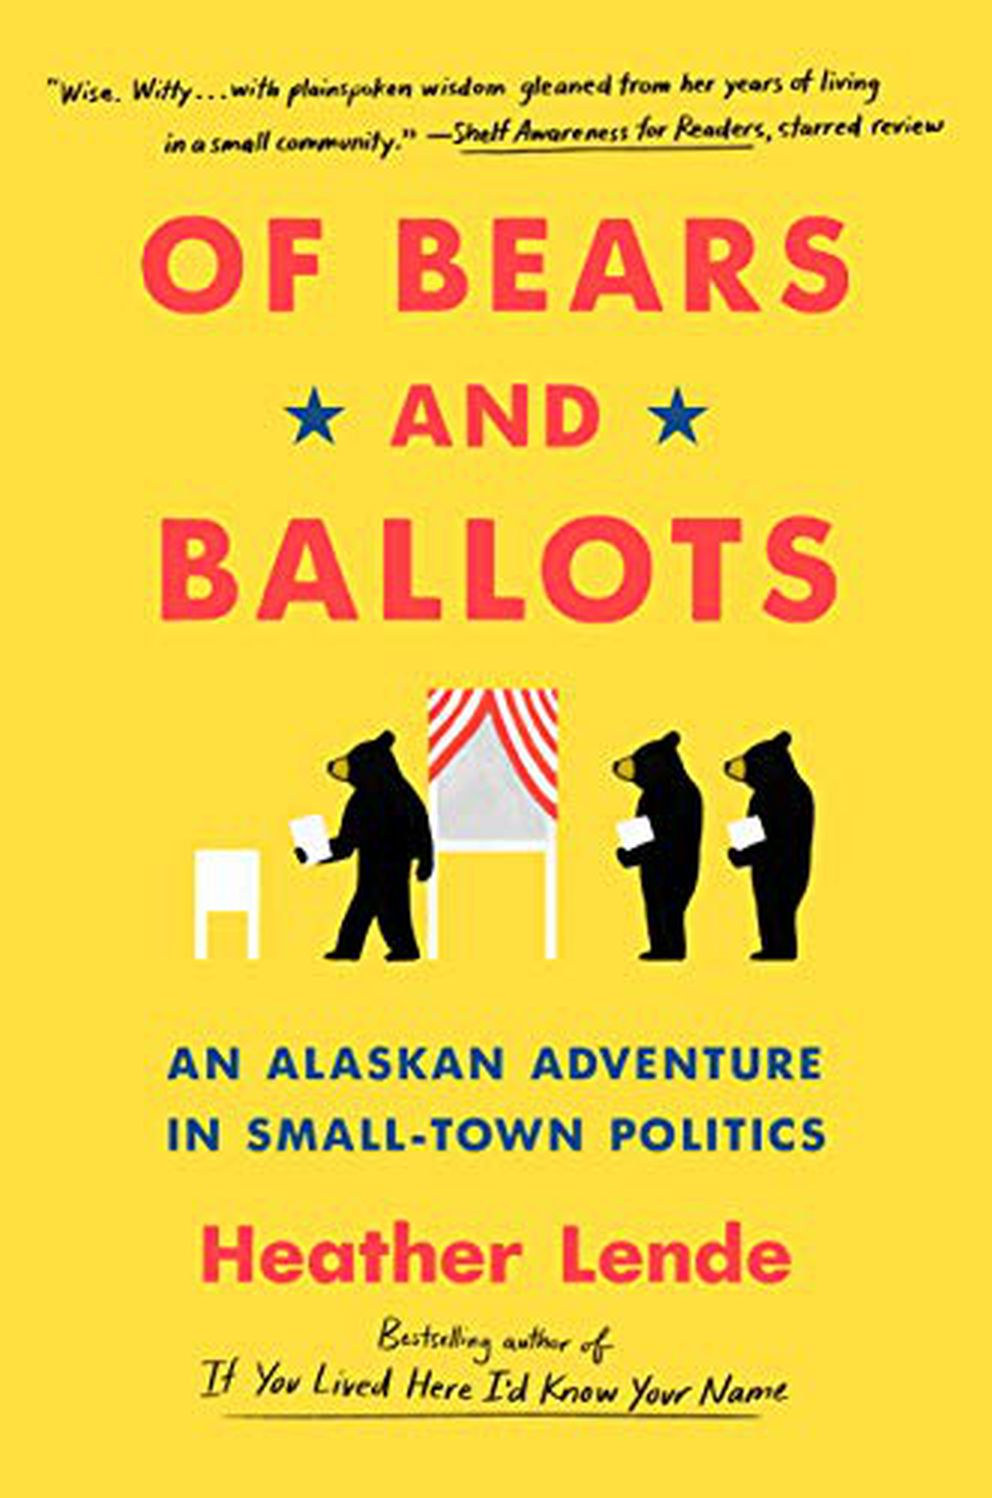 'Of Bears and Ballots: An Alaskan Adventure in Small-Town Politics, ' by Heather Lende